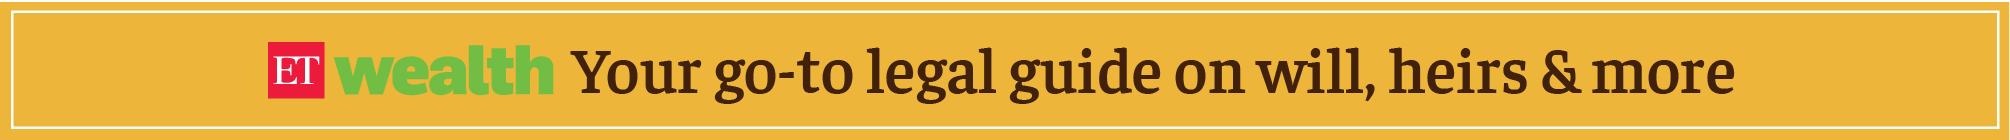 Your legal guide on estate planning, will & more